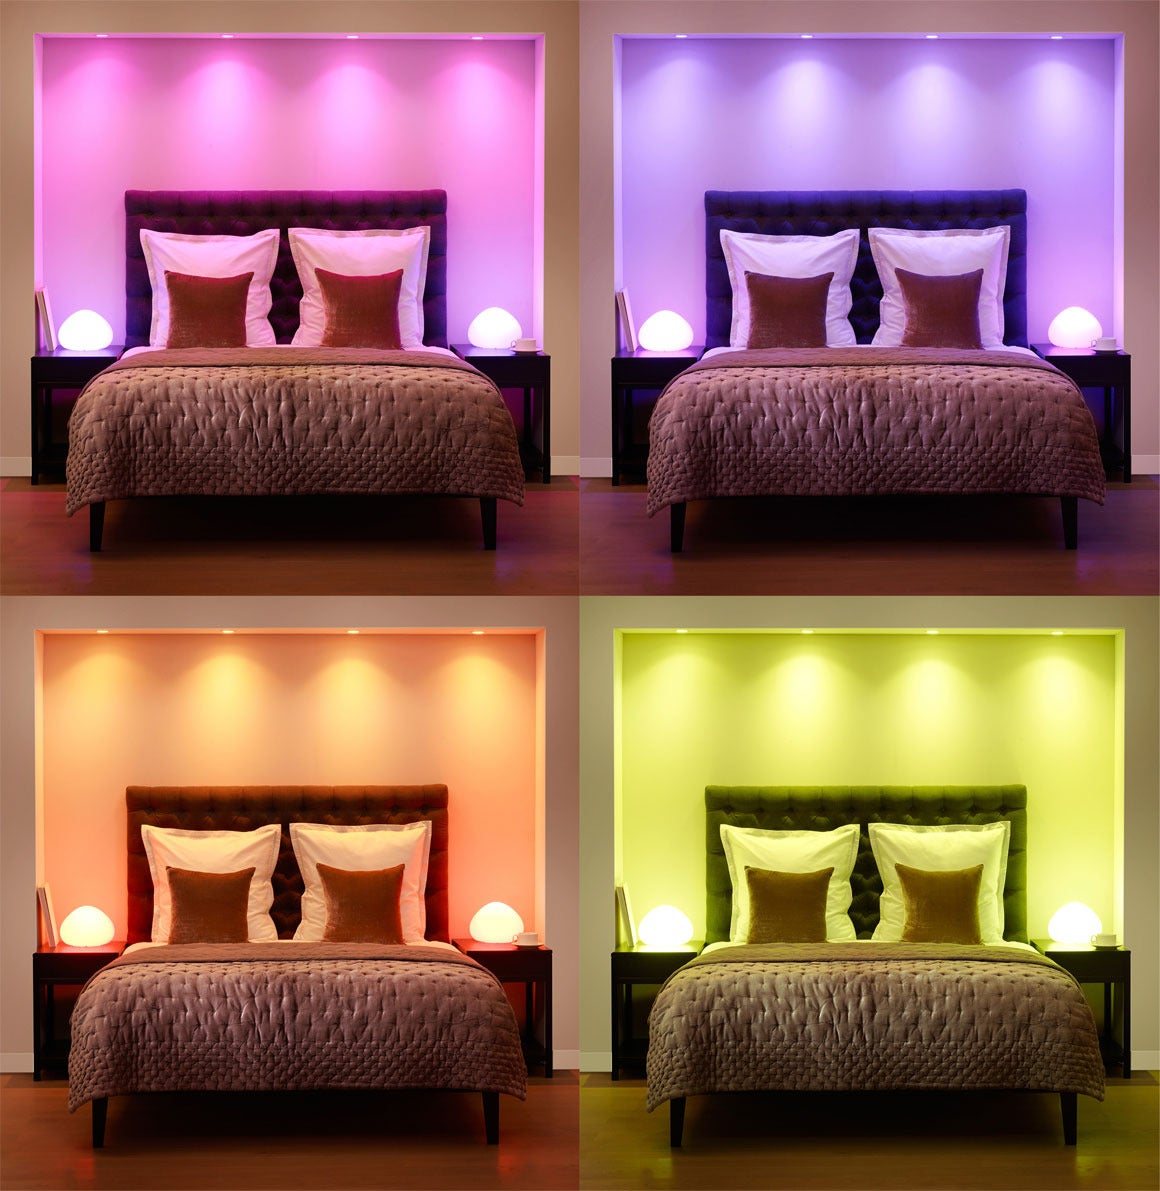 How to optimize your home lighting design based on color for Lights for your room